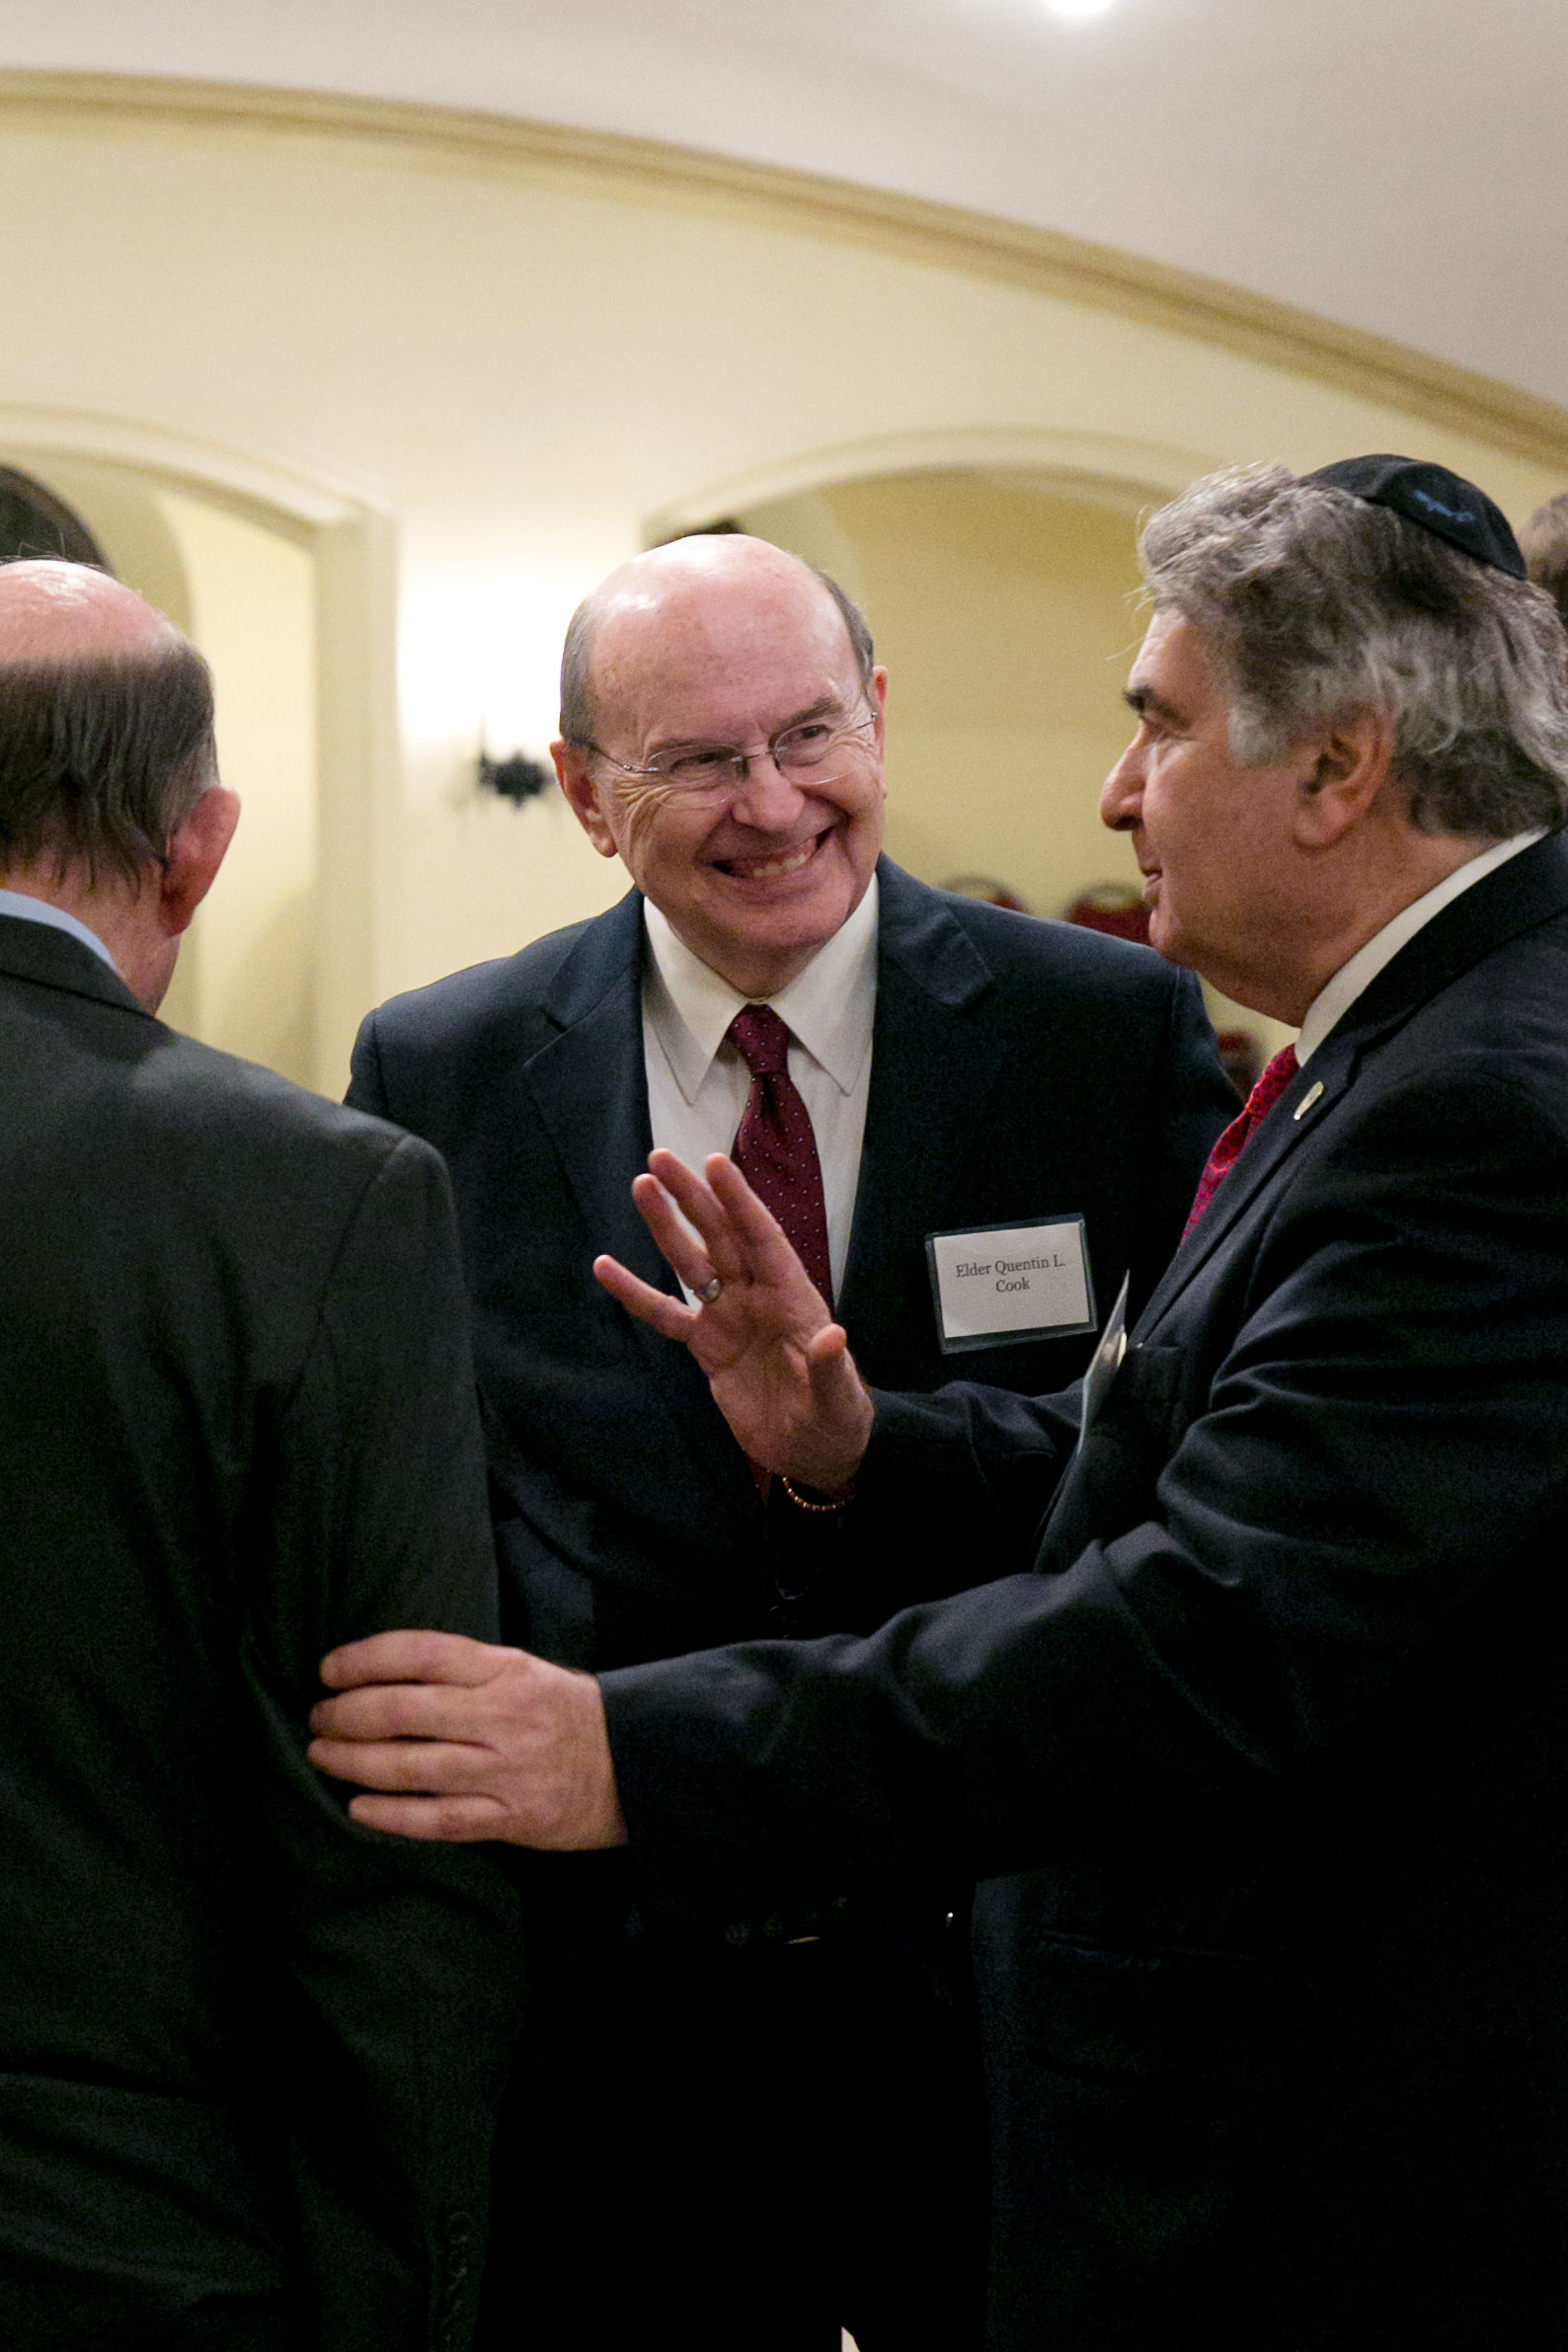 Robert Abrams, the former New York attorney general; Elder Quentin L. Cook of the Quorum of the Twelve Apostles; and Rabbi Joseph Potasnik participate in meeting sponsored by the New York Latter-day Saint Professional Association on Dec. 18.